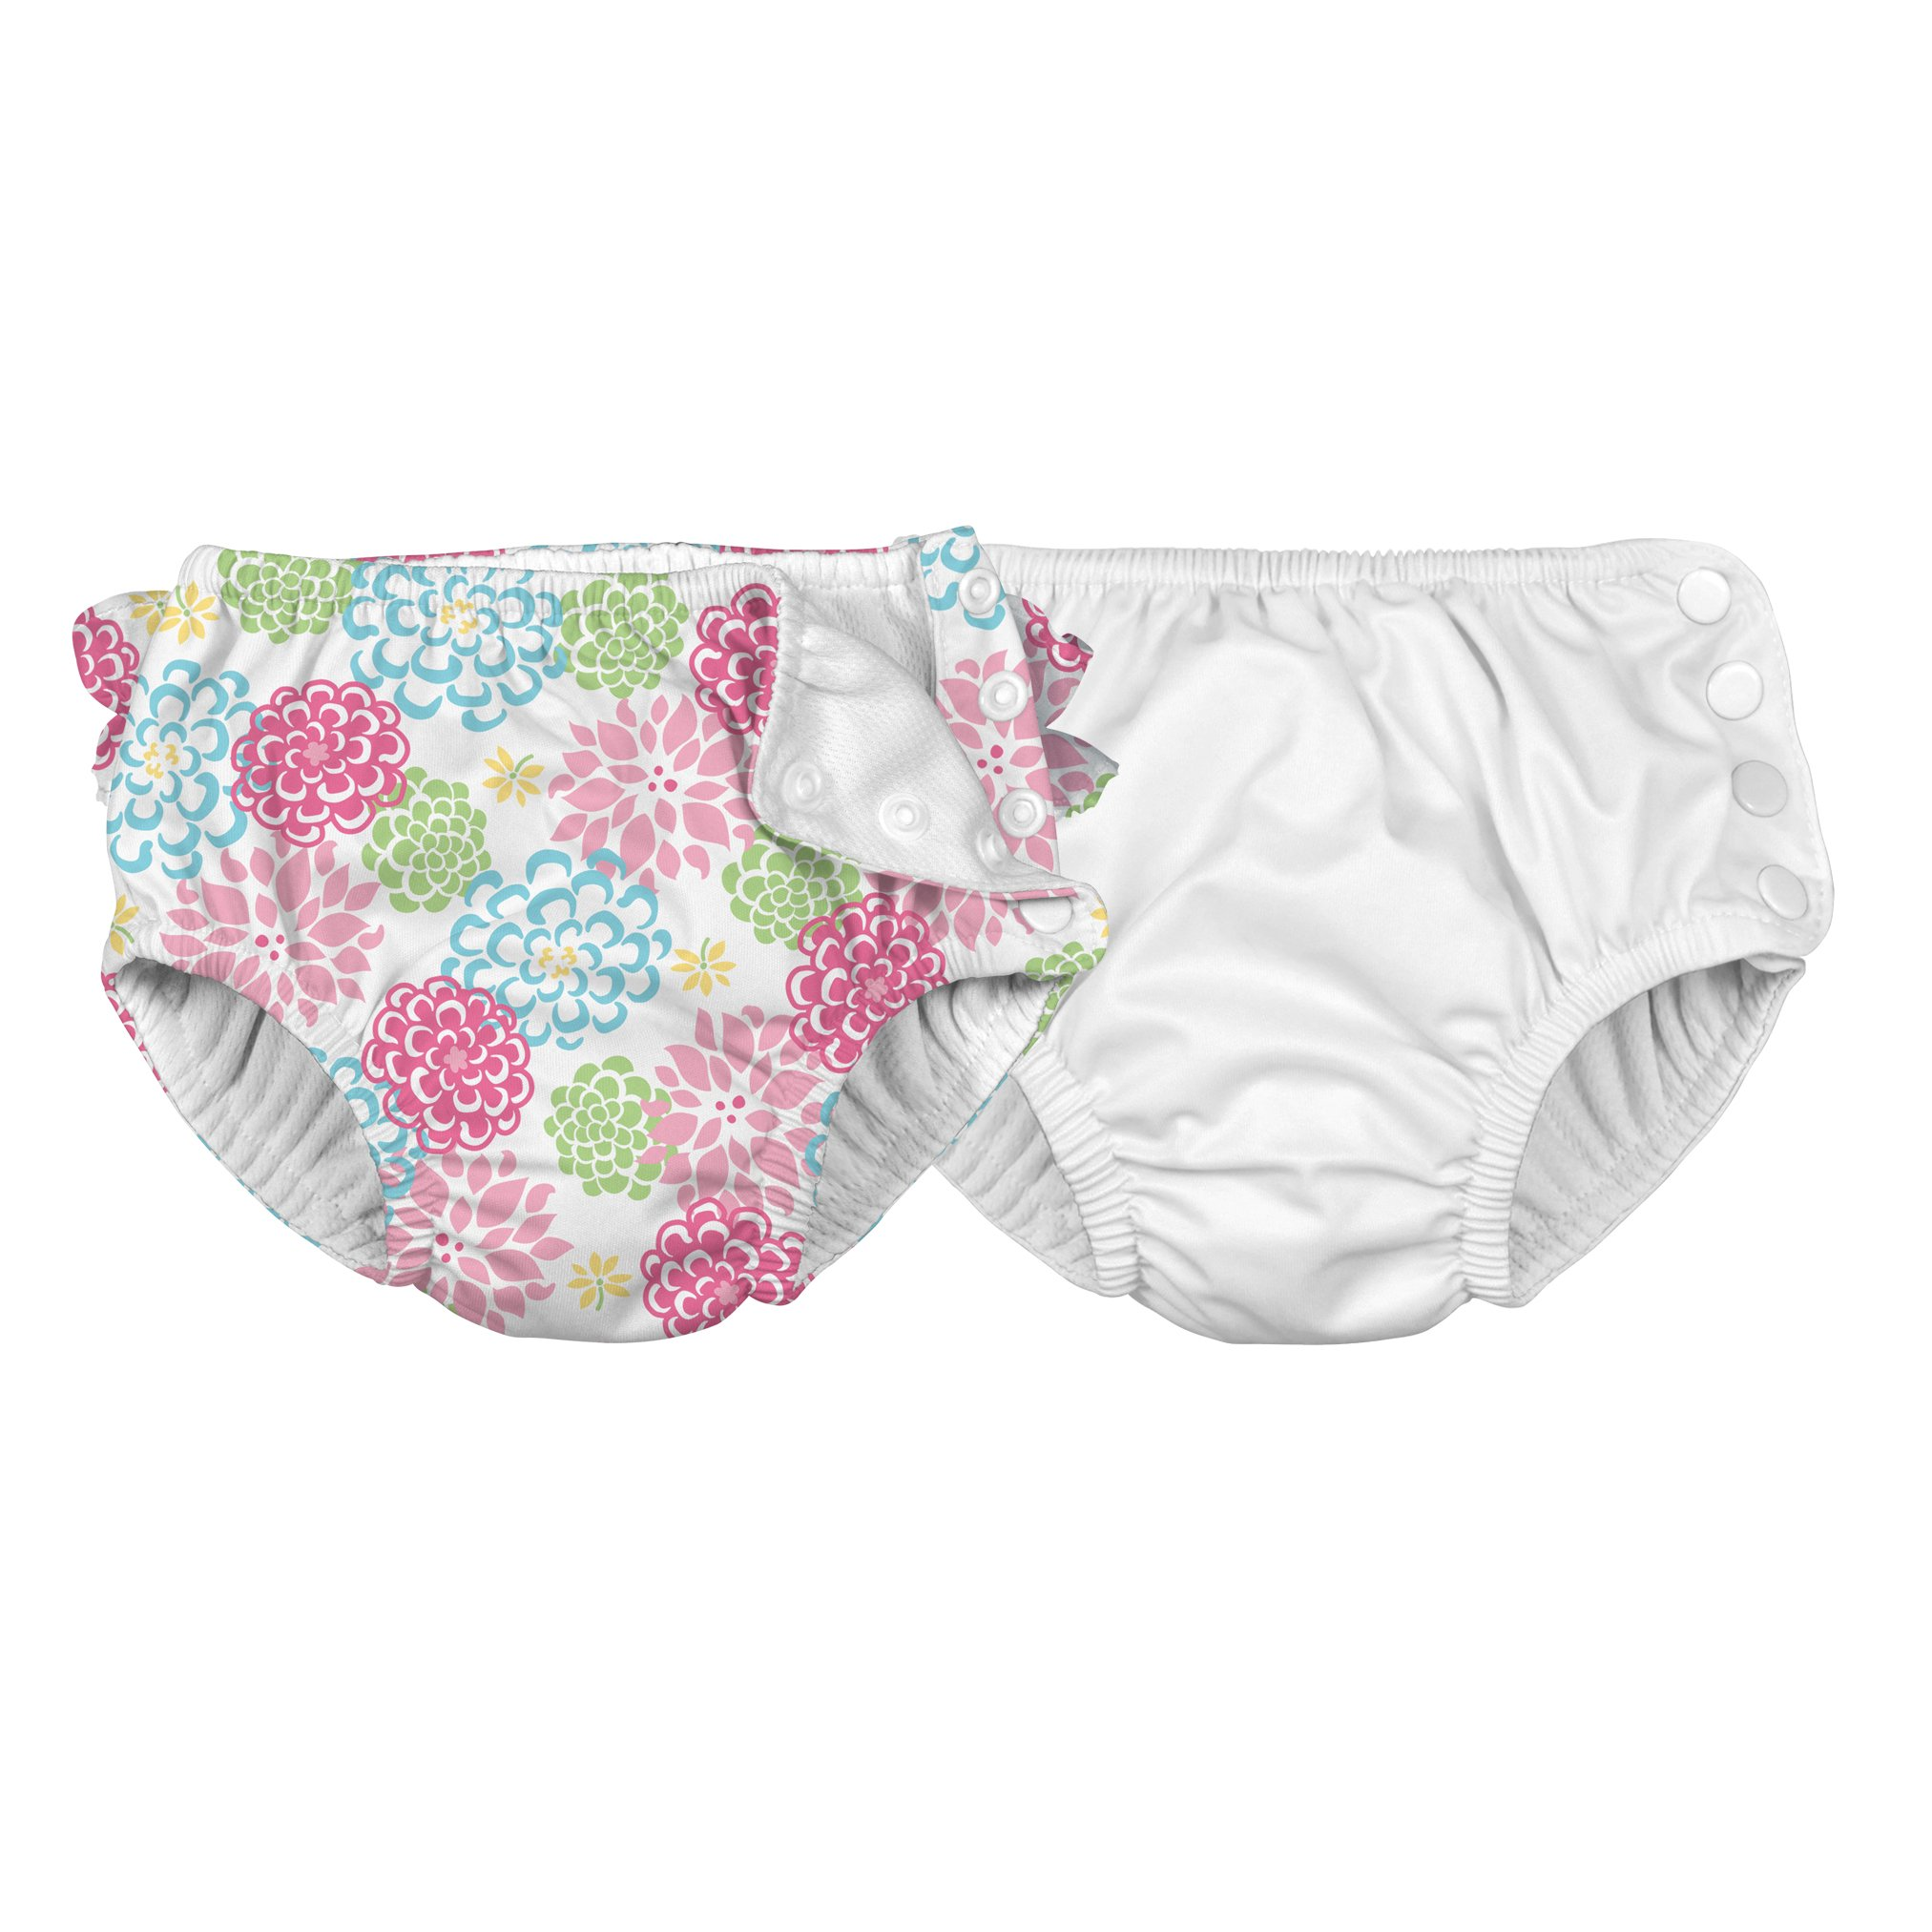 i play. Baby Boys' Reusable Absorbent Swim Diapers, Pack of 2 by i play.